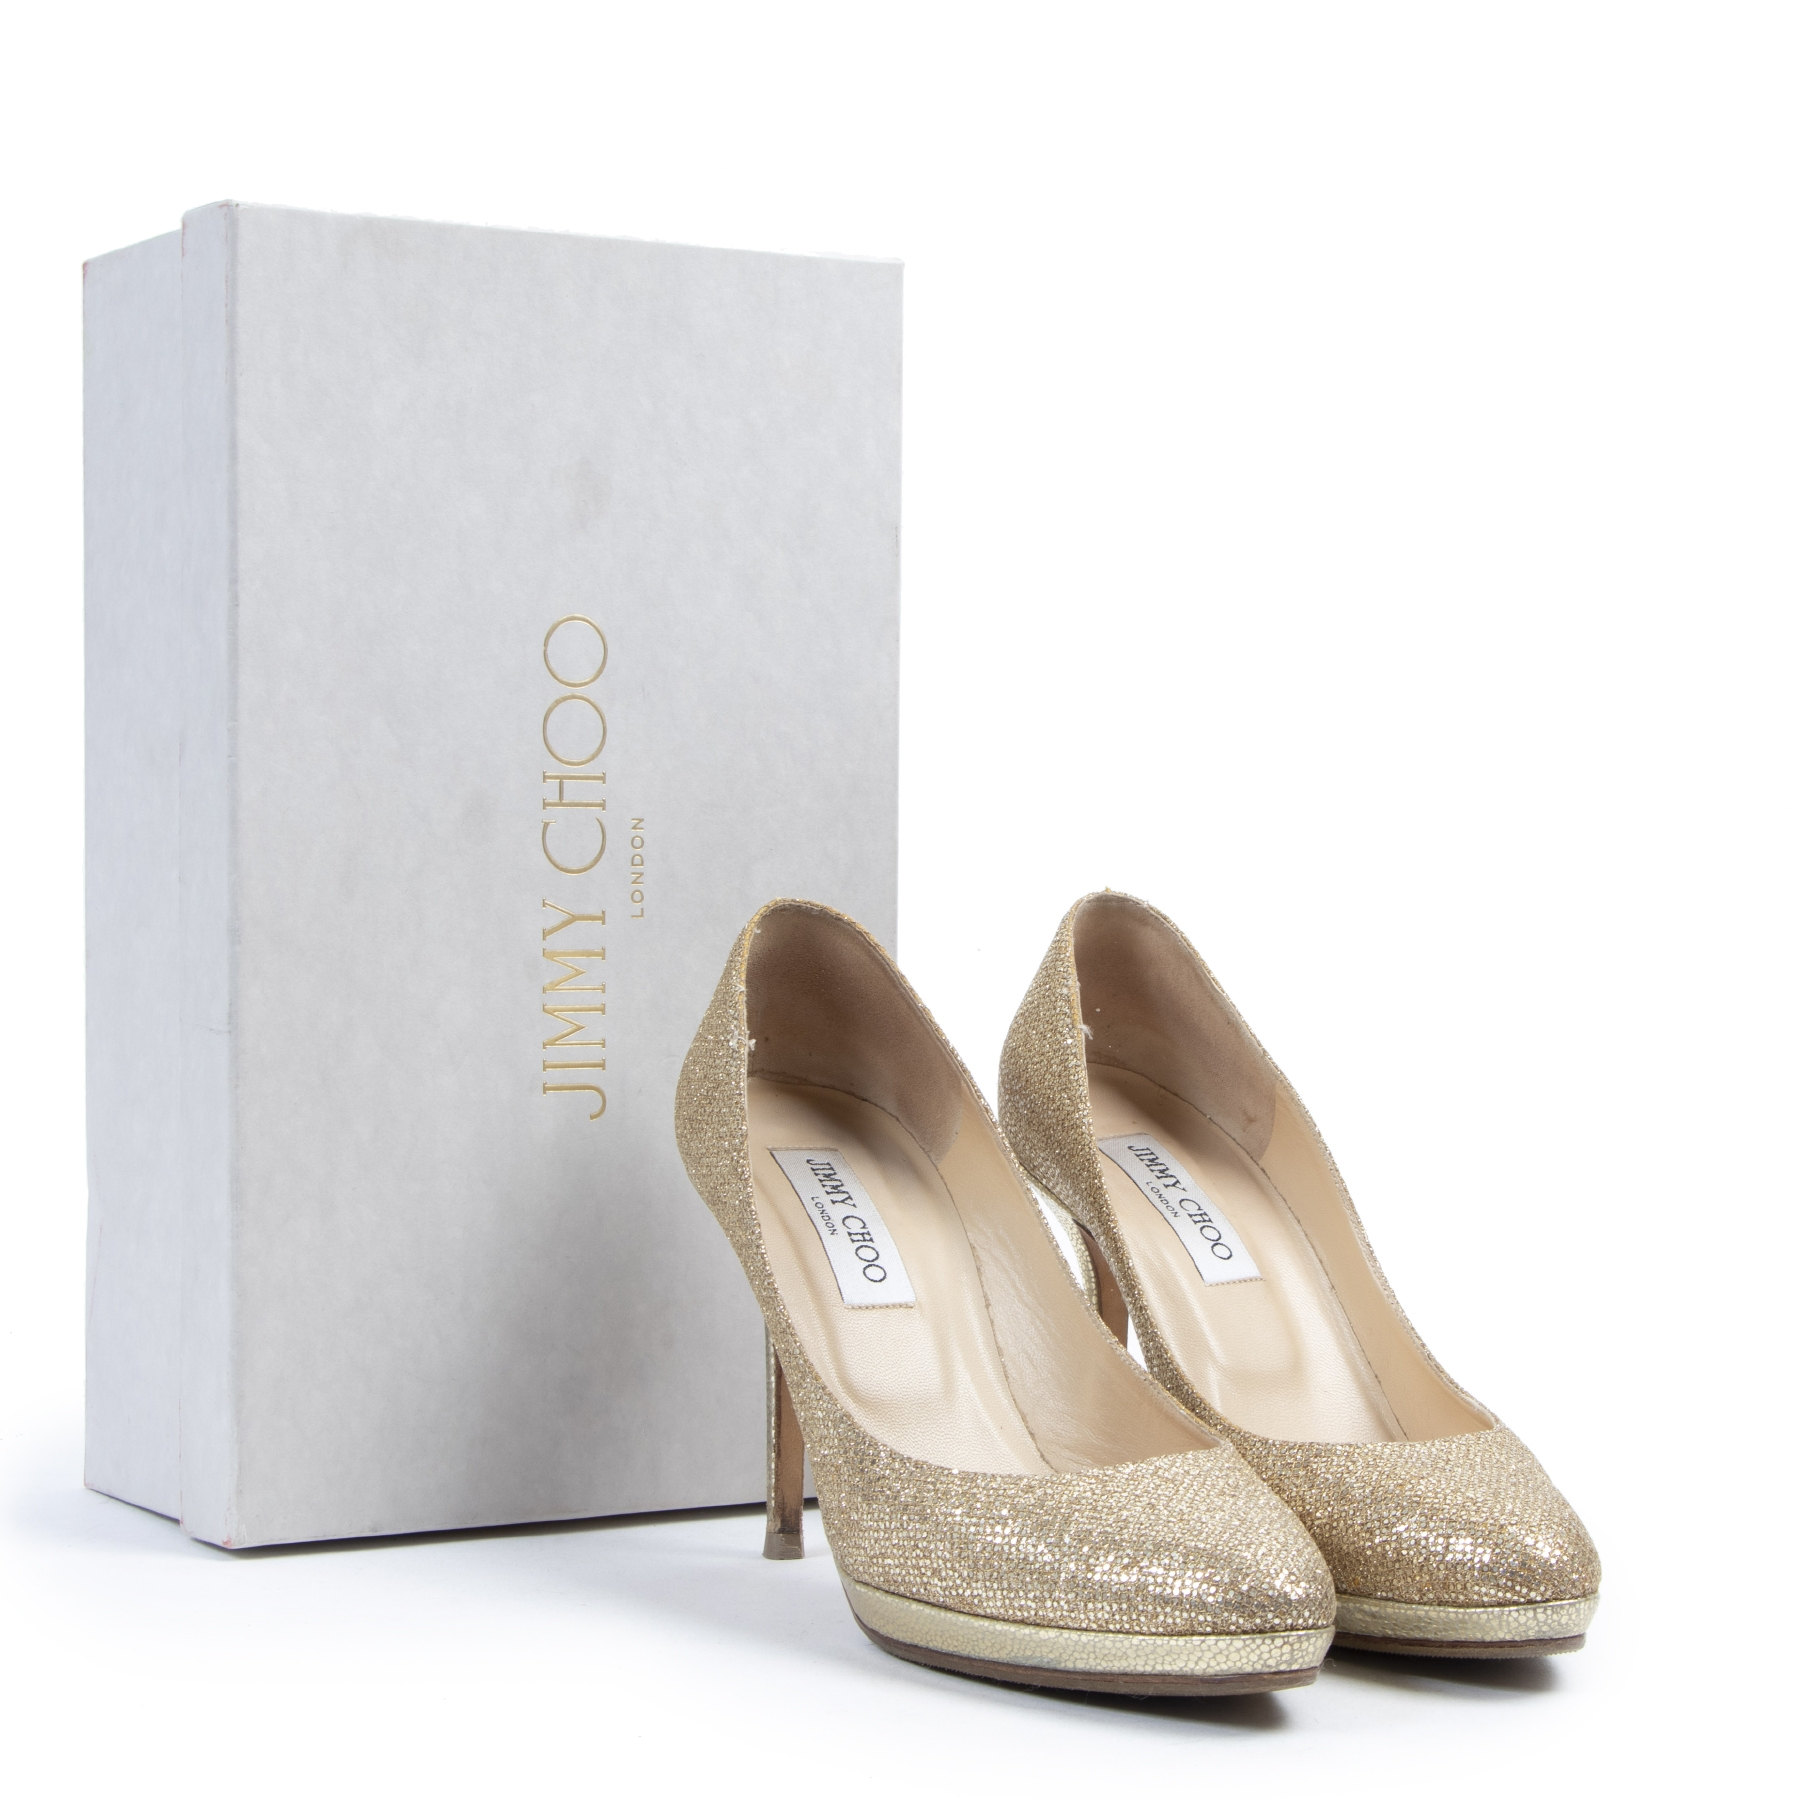 Authentic secondhand Jimmy Choo Gold Glitter Pumps - Size 39 designer shoes luxury vintage webshop safe secure online shopping